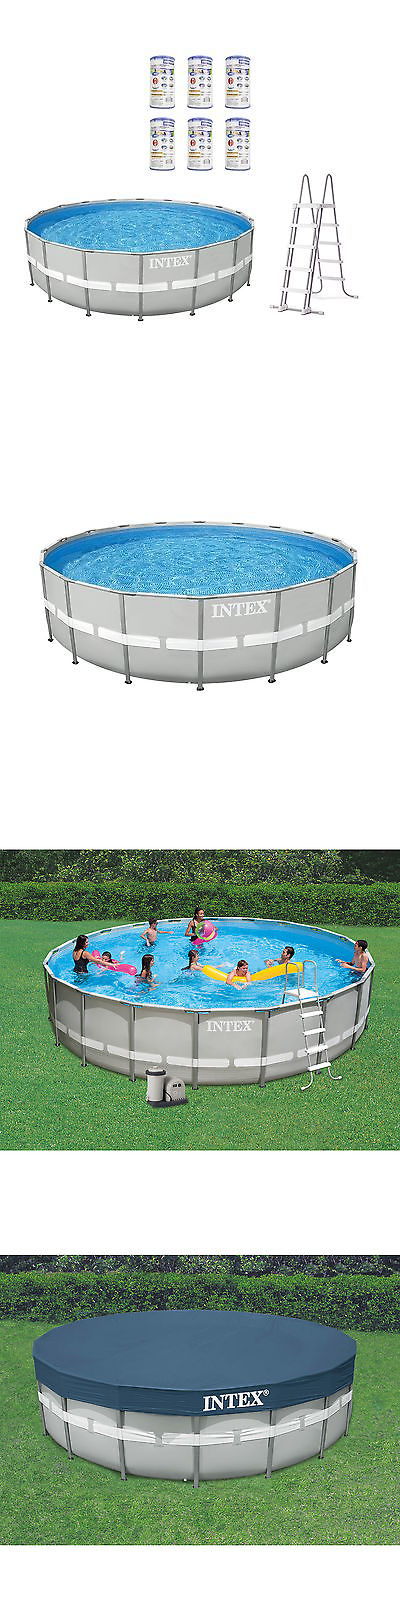 Above Ground Pools 116405: Intex 20 X 4 Ultra Frame Above Ground .